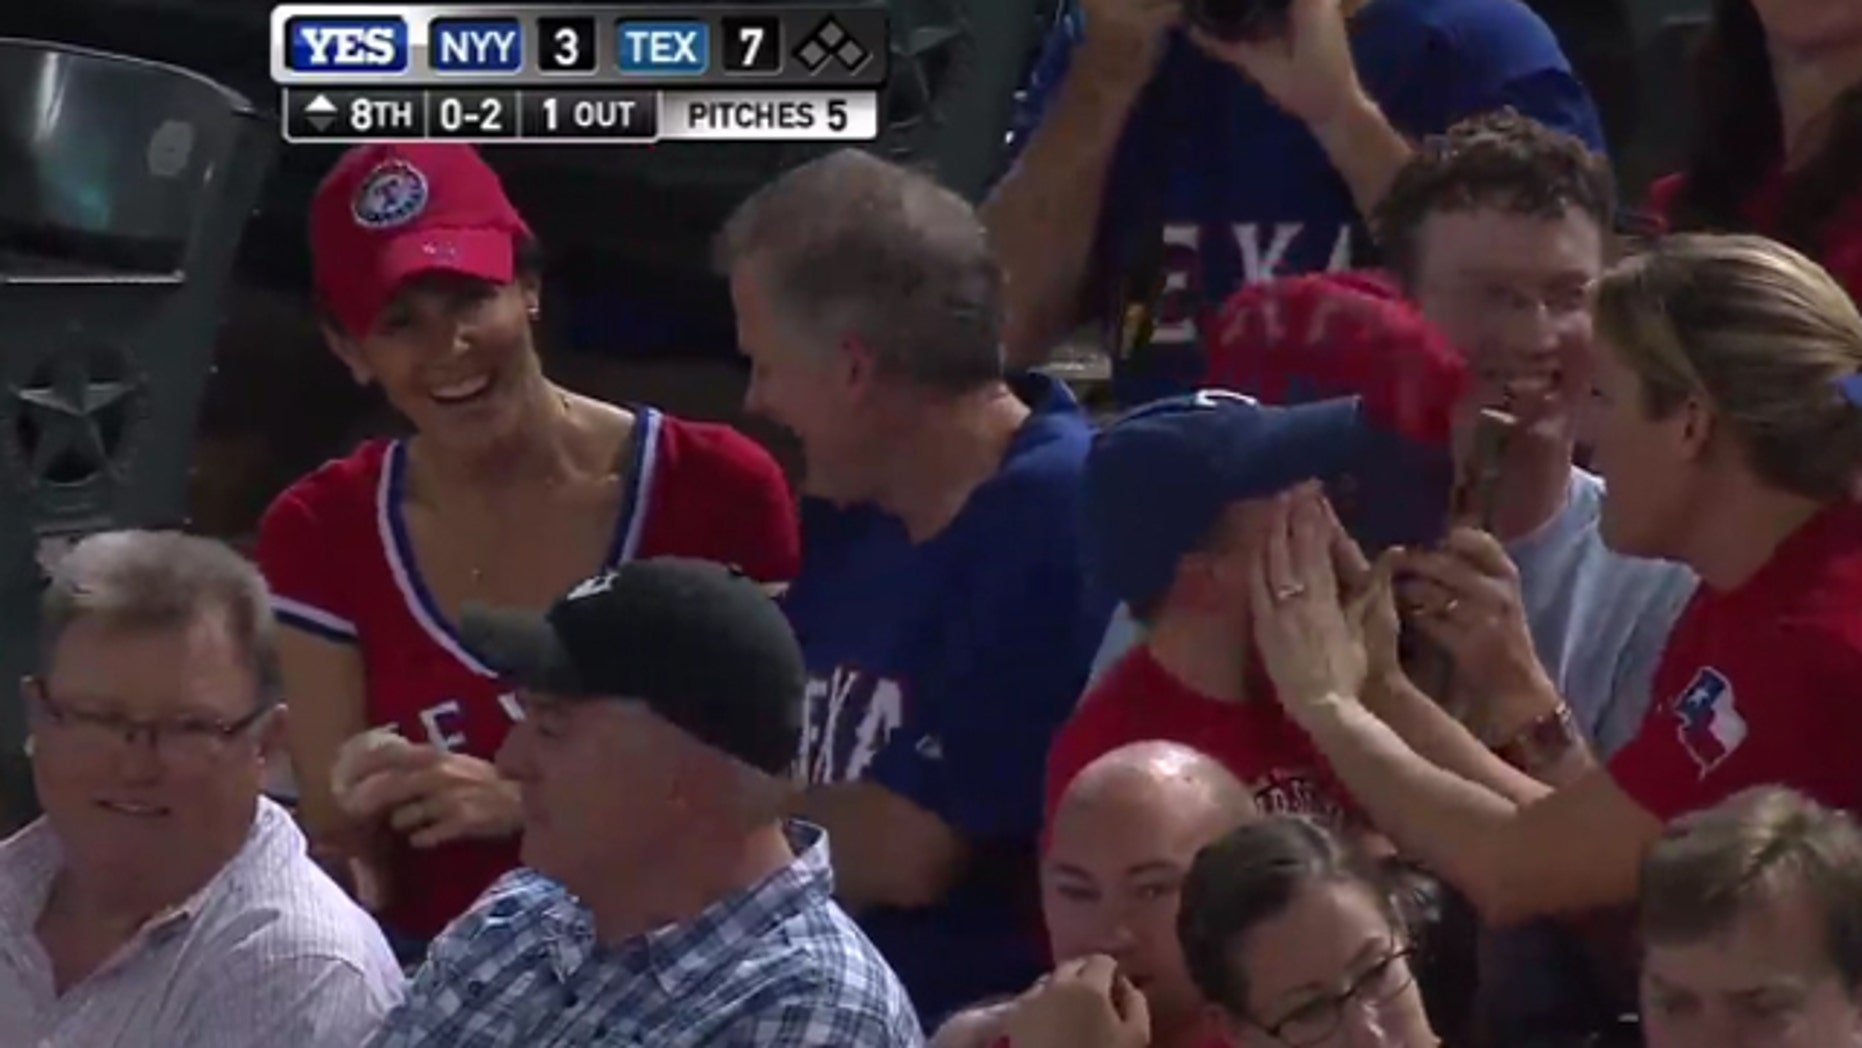 Shannon Moore, far left, and Sean Leonard celebrate catching a ball tossed into the stands during Wednesday's Rangers-Yankees game as 3-year-old Cameron Shores cries.